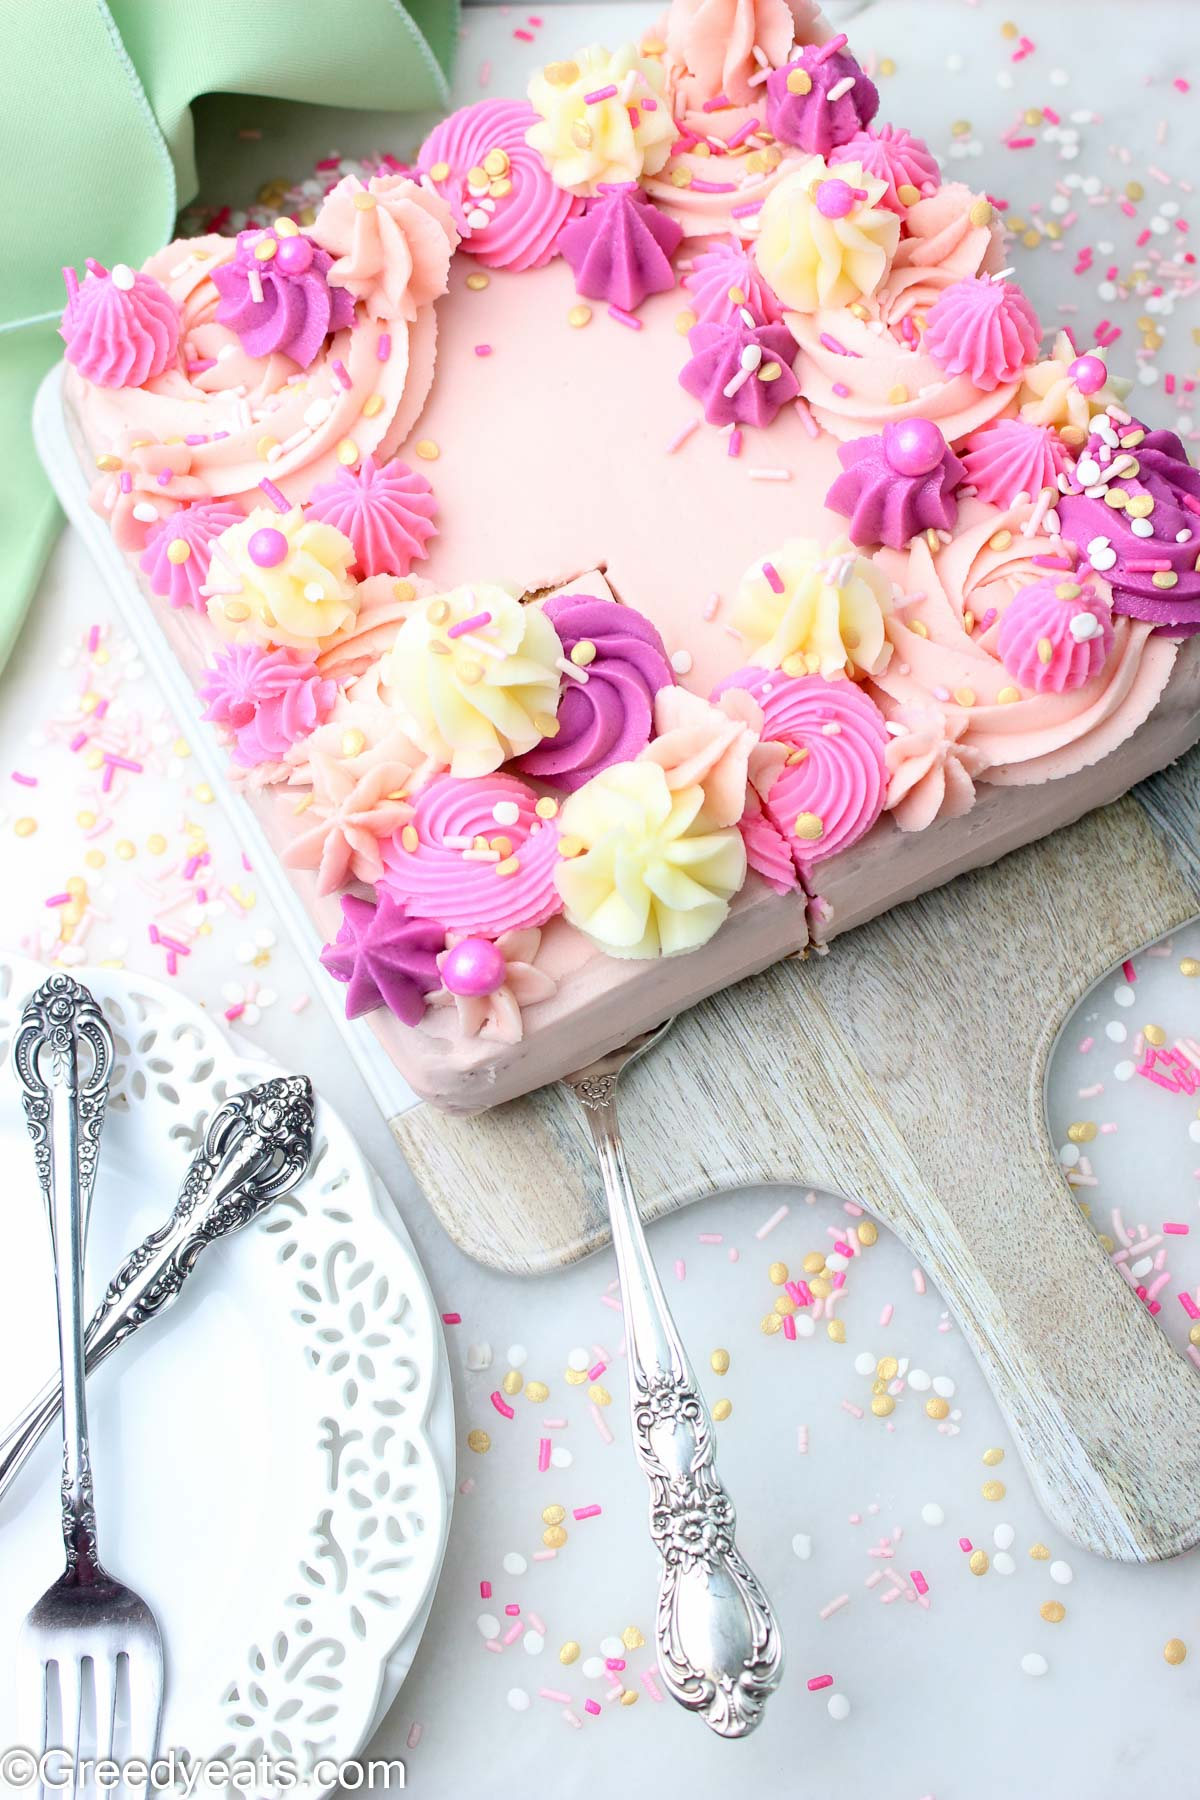 Best Vanilla Cake baked in a square pan with vanilla frosting tinted with dusty pink and pink gel food colorings.